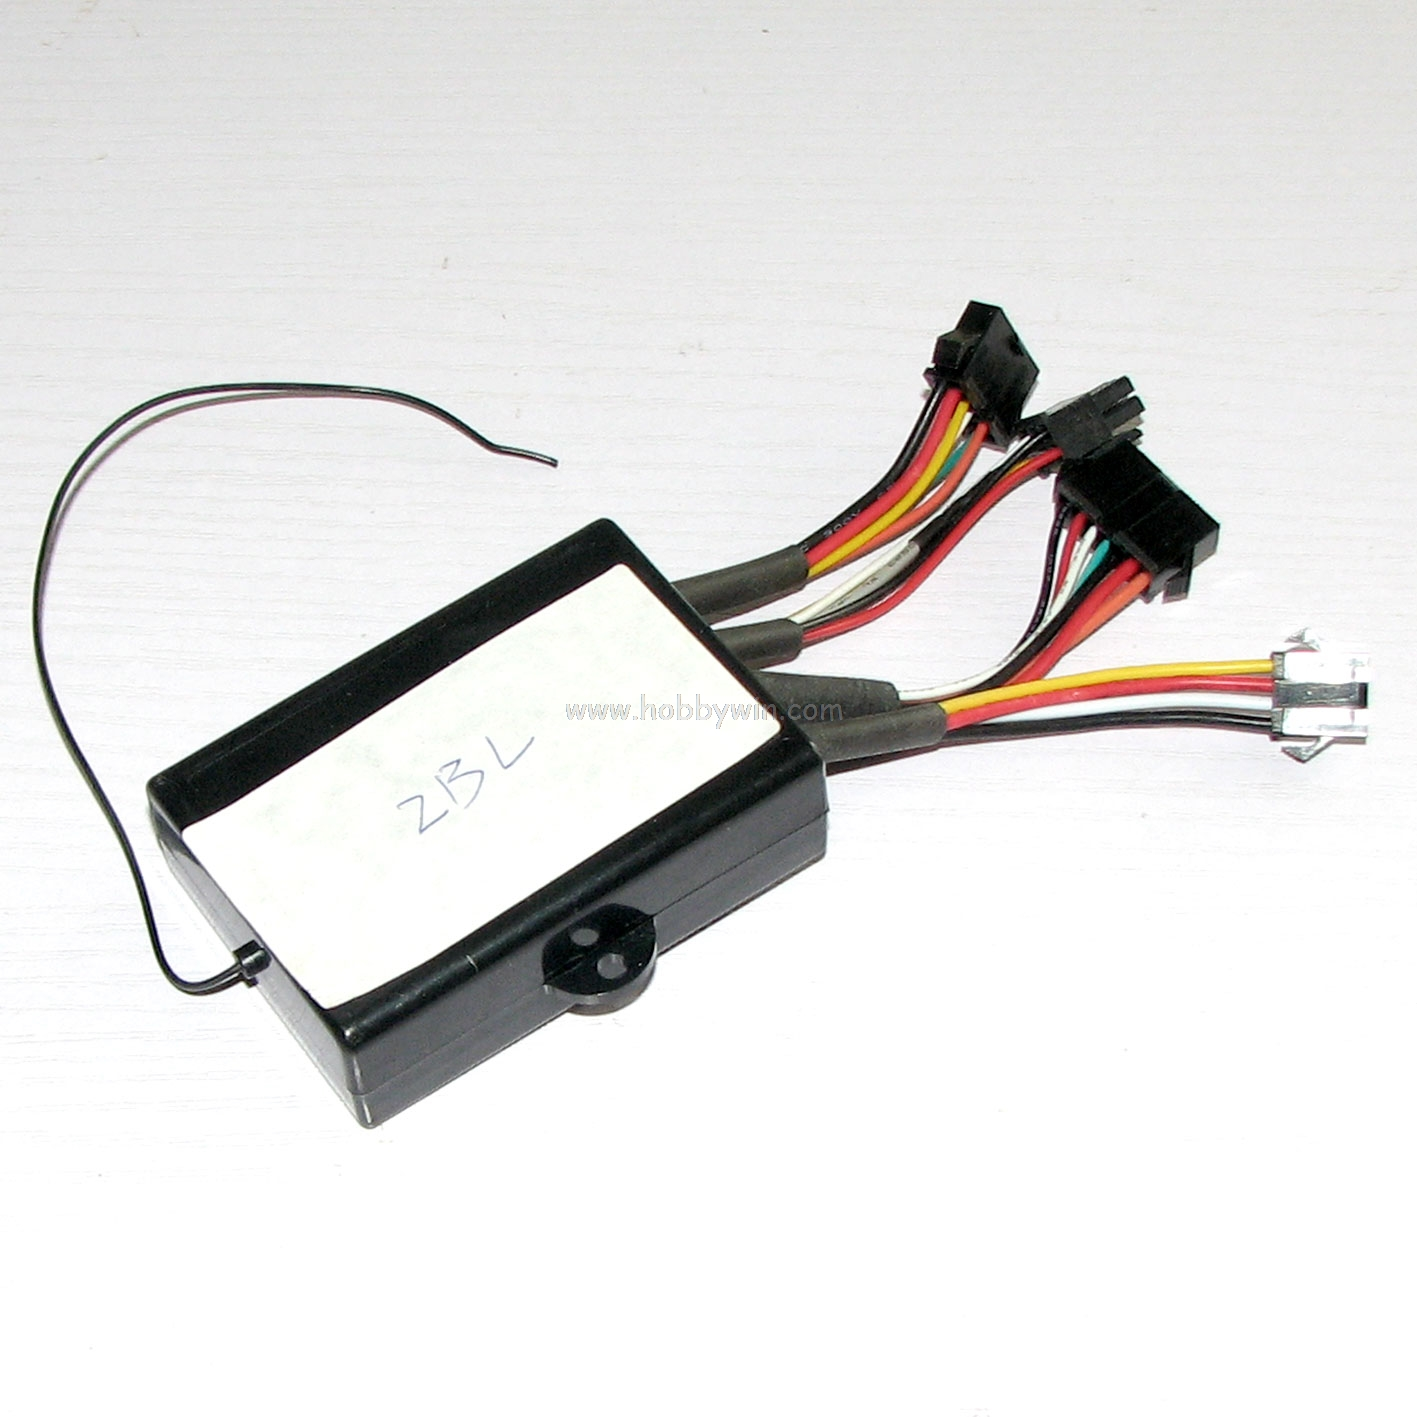 hight resolution of jabo part receiver for jabo 2bl lithium battery bait boat 2 4ghz rc feeding fishing ship spare parts